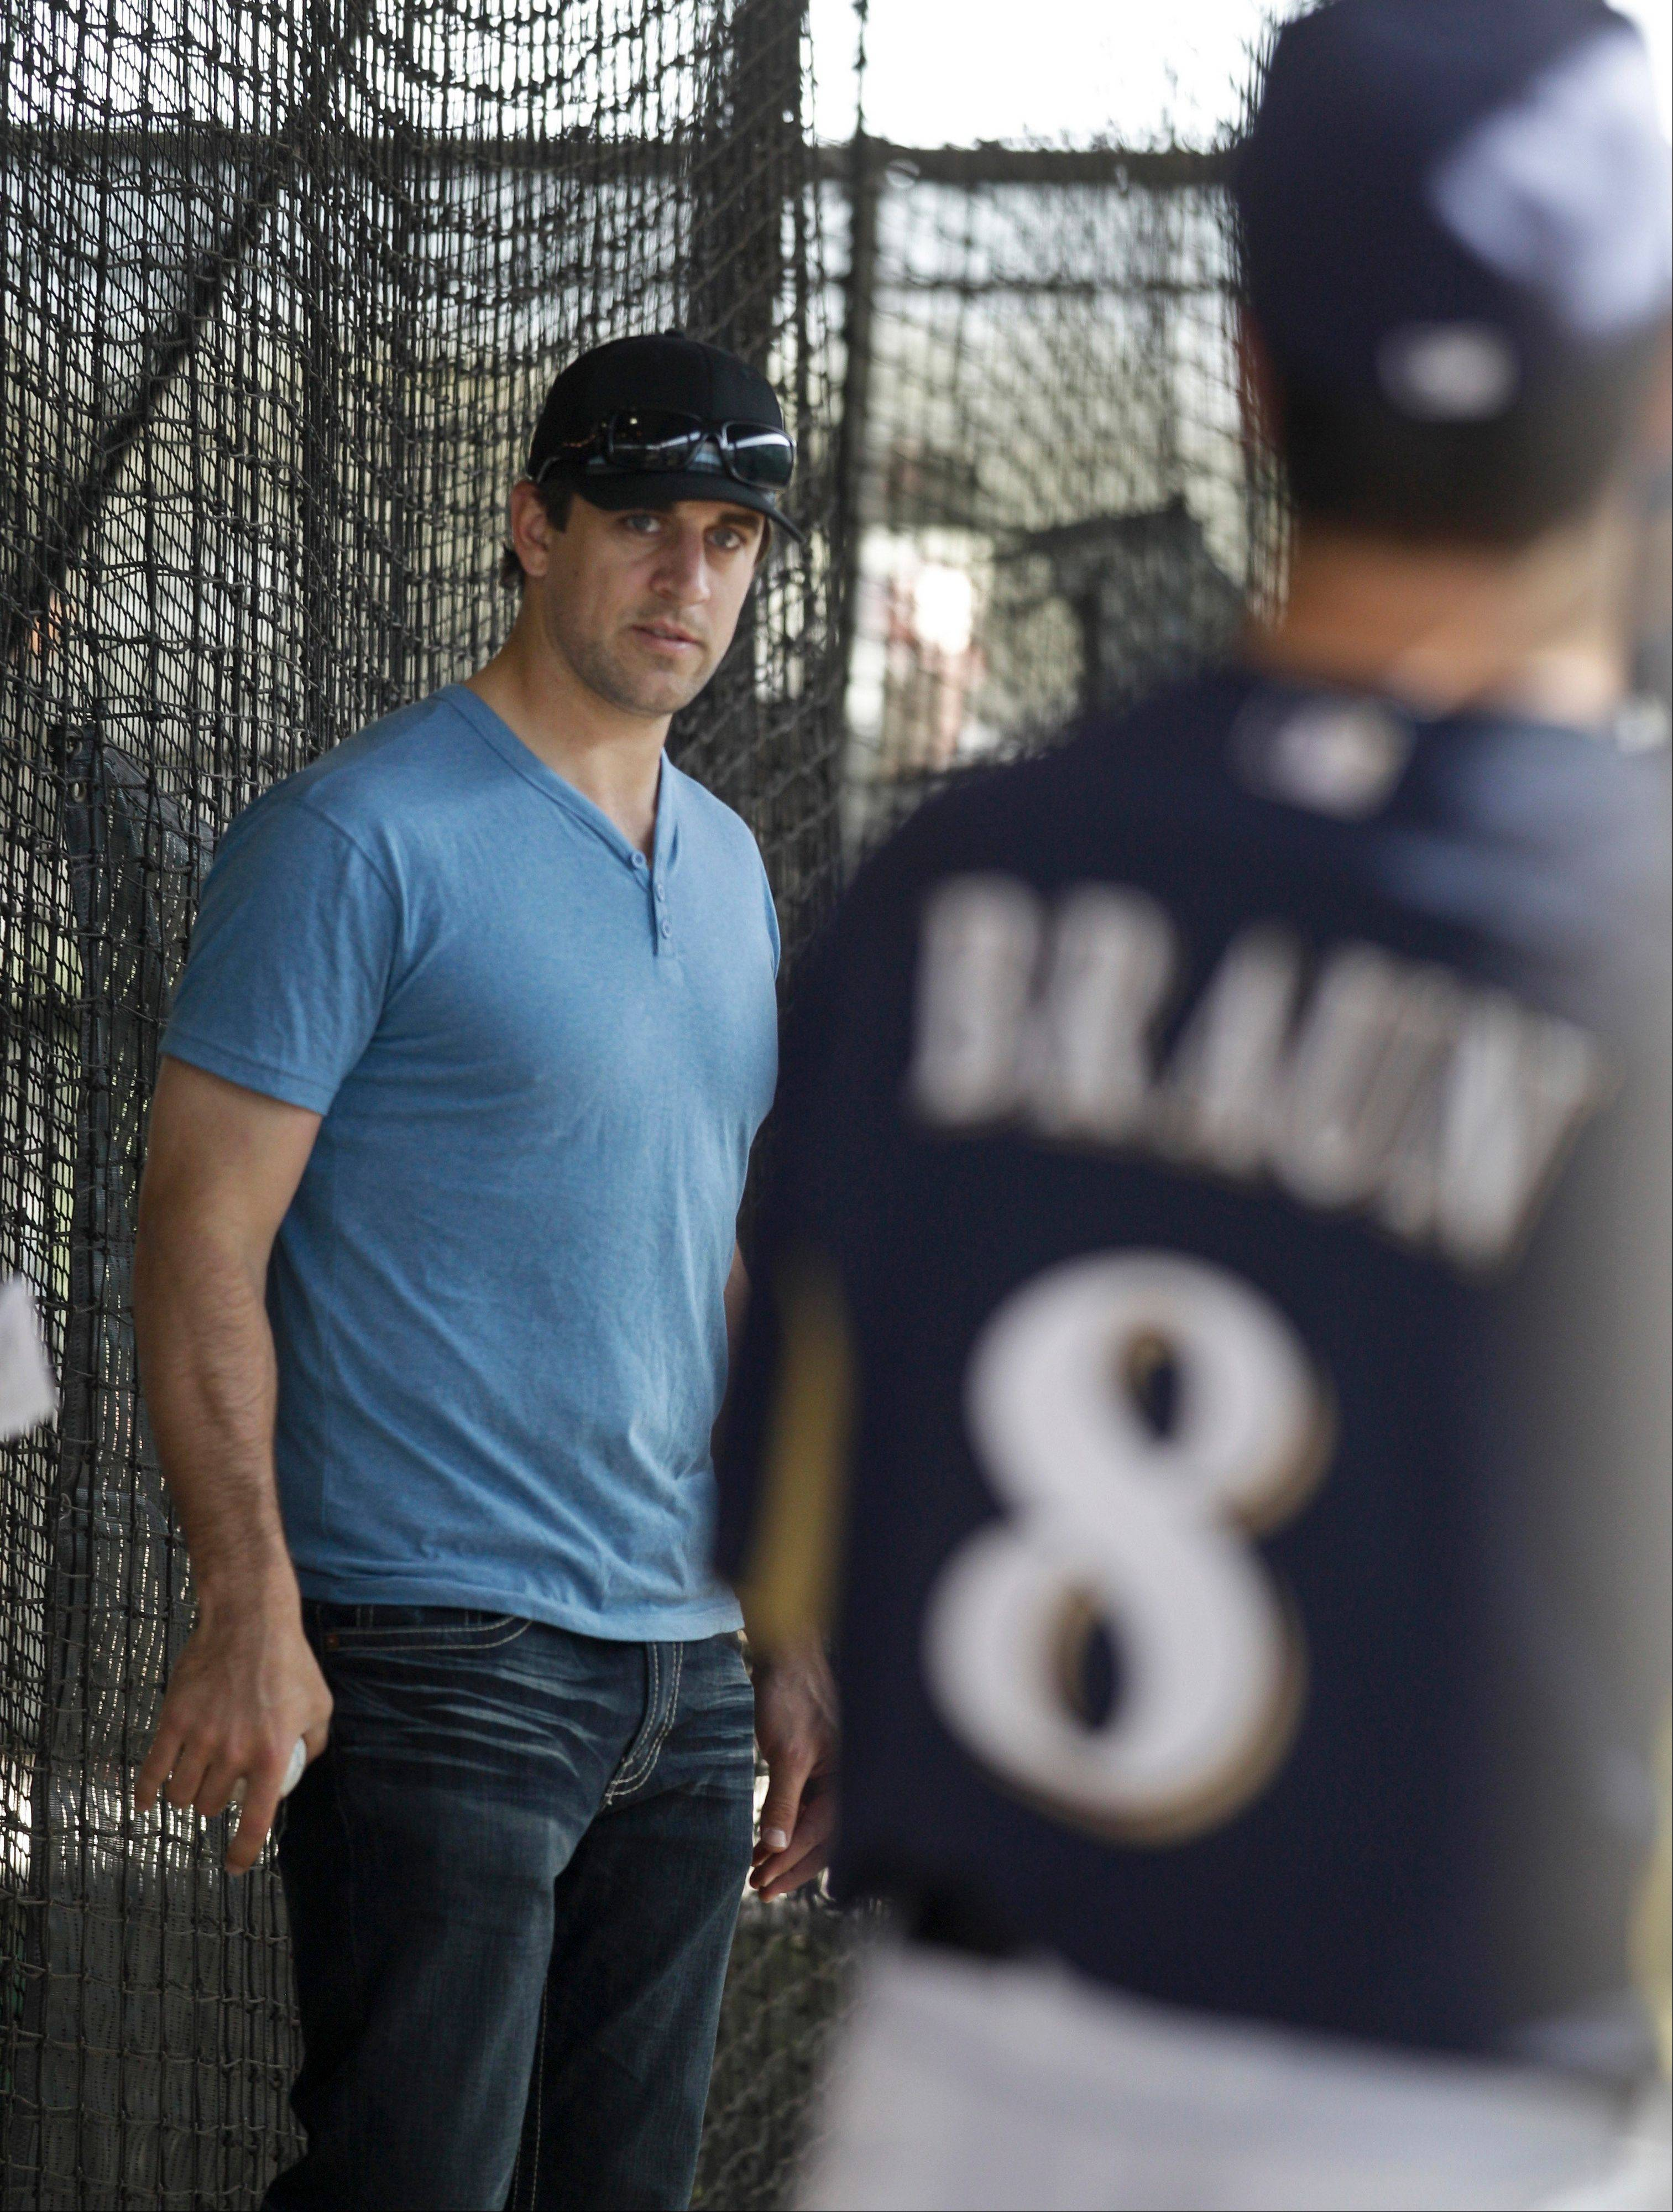 The Brewers� Ryan Braun, right, and Green Bay Packers quarterback Aaron Rodgers chat during a spring training workout in Phoenix.